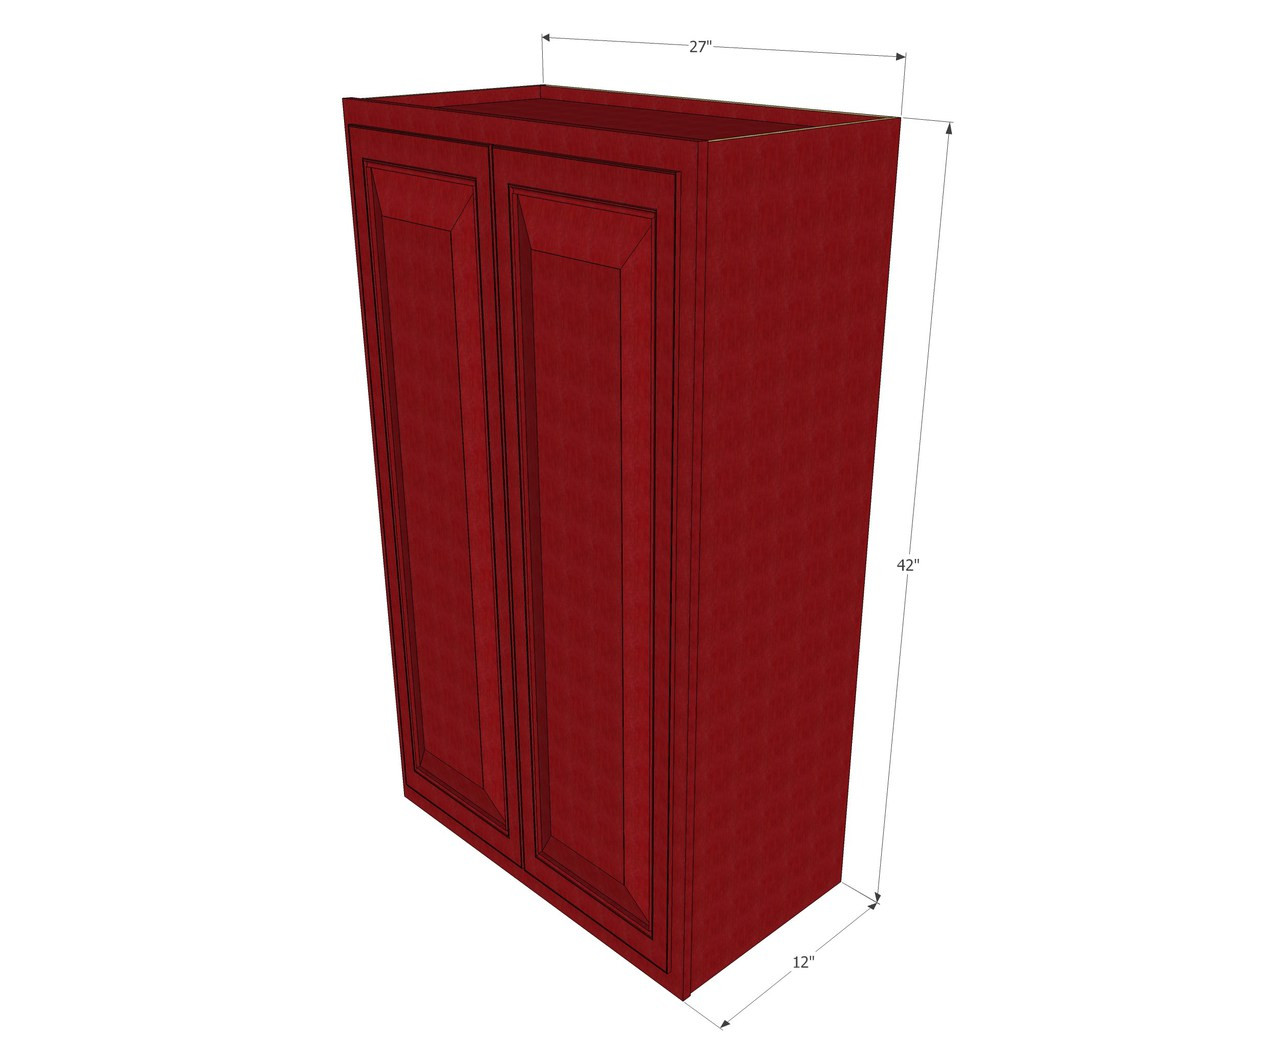 Large Double Door Grand Reserve Cherry Wall Cabinet 27 Inch Wide X 42 Inch High Kitchen